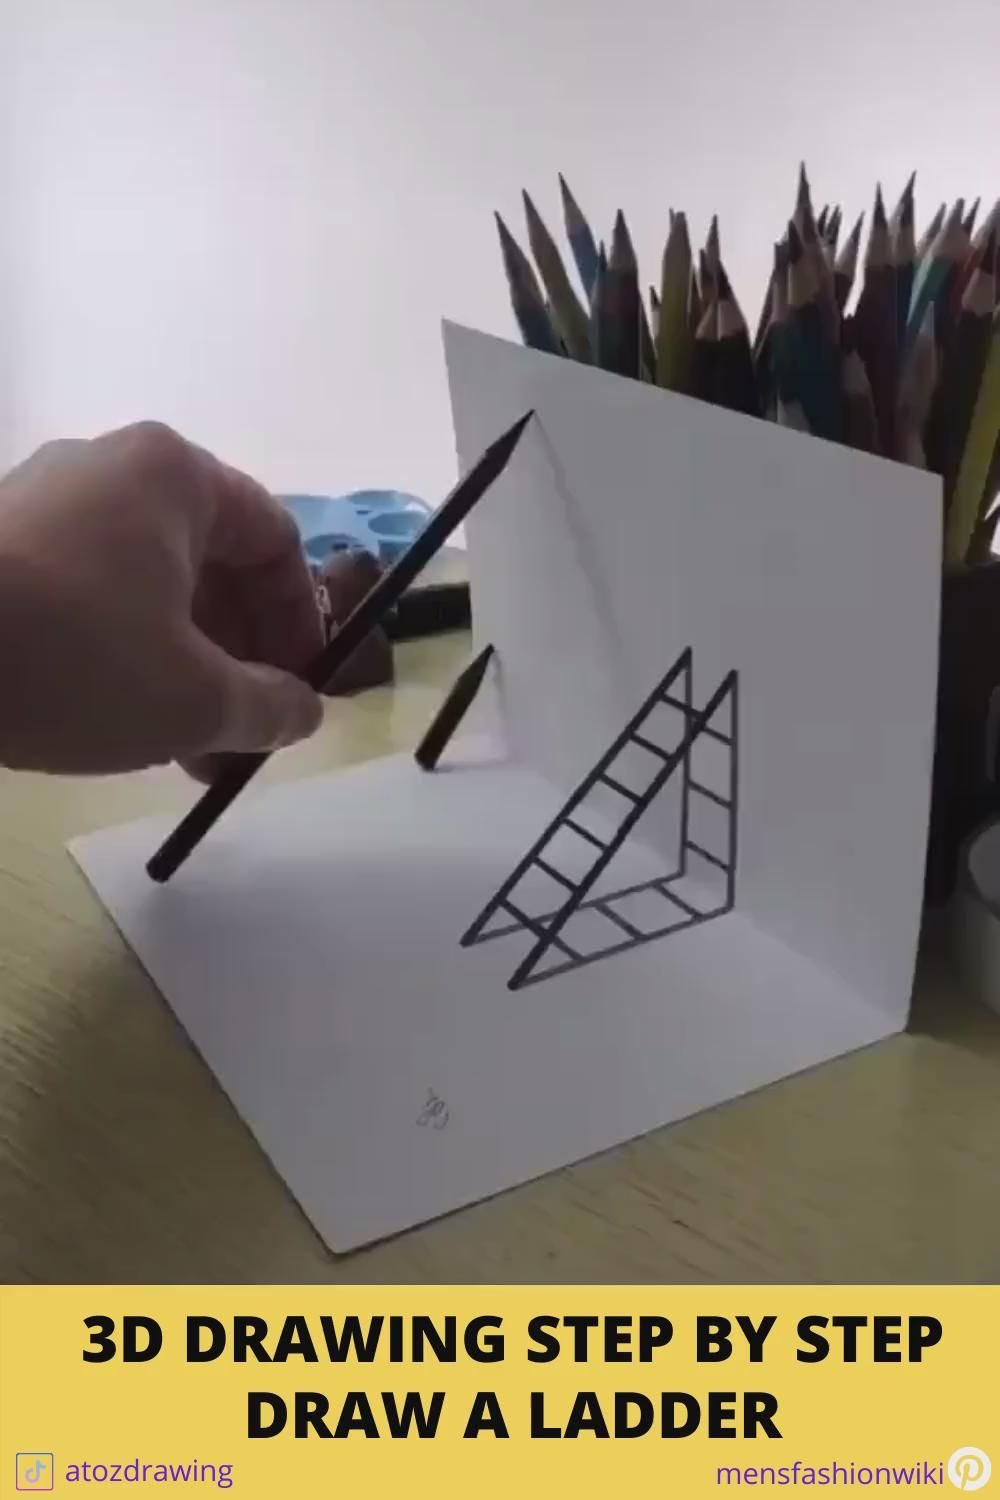 3D drawings step by step tutorials - Draw a ladder